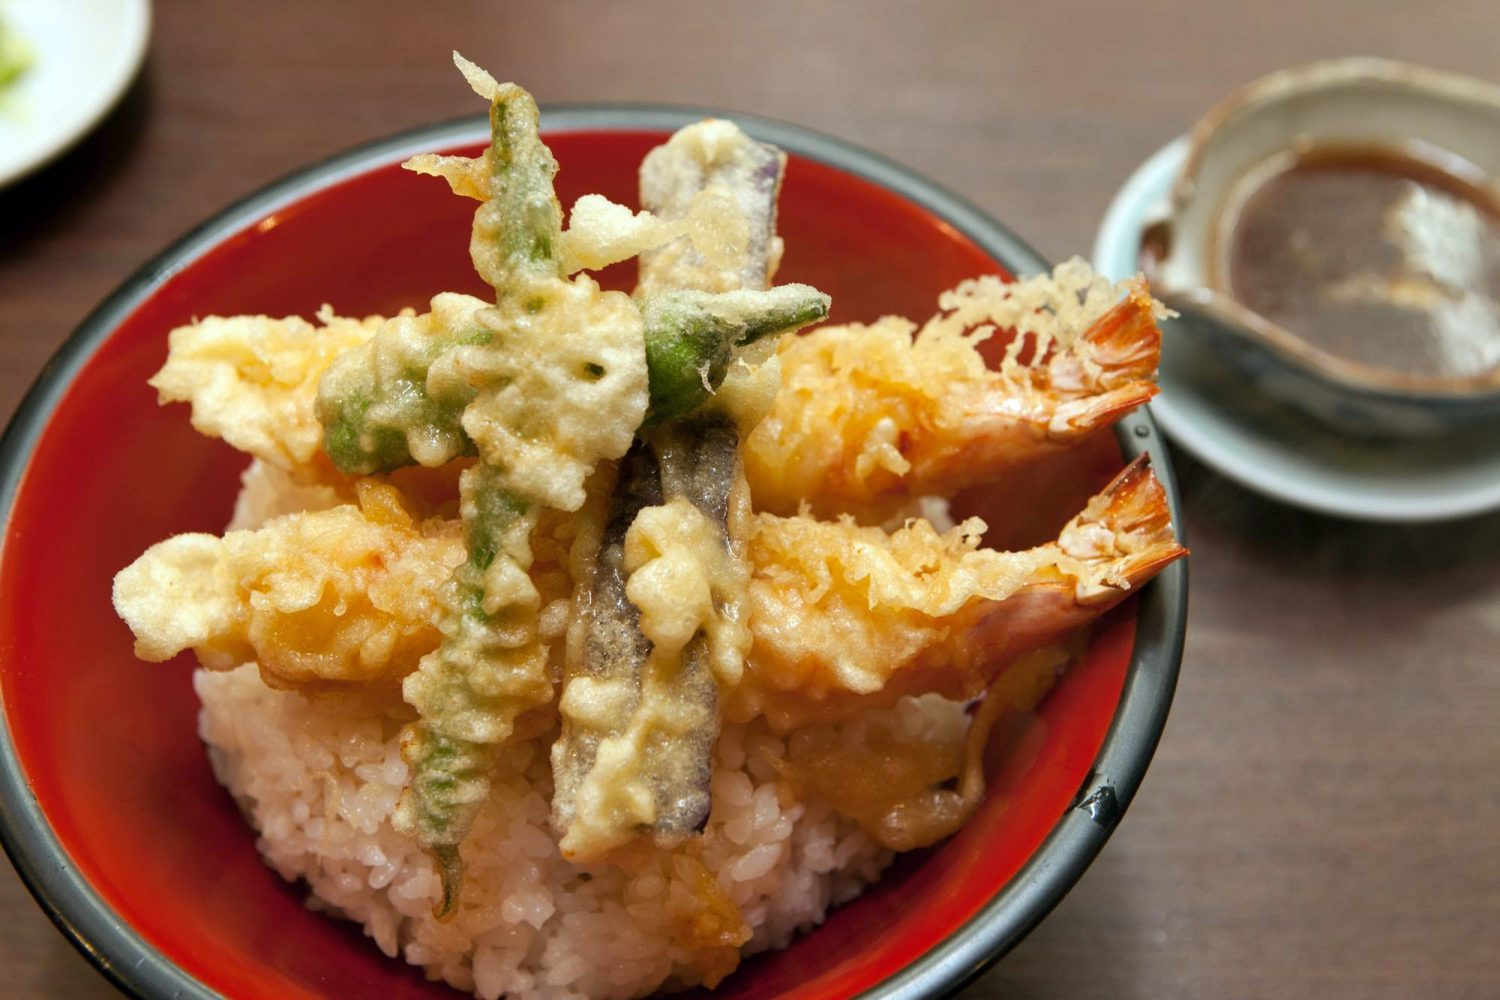 TEMPURA-DON(天ぷら丼) : Rice topped with two fried Tempura prawns